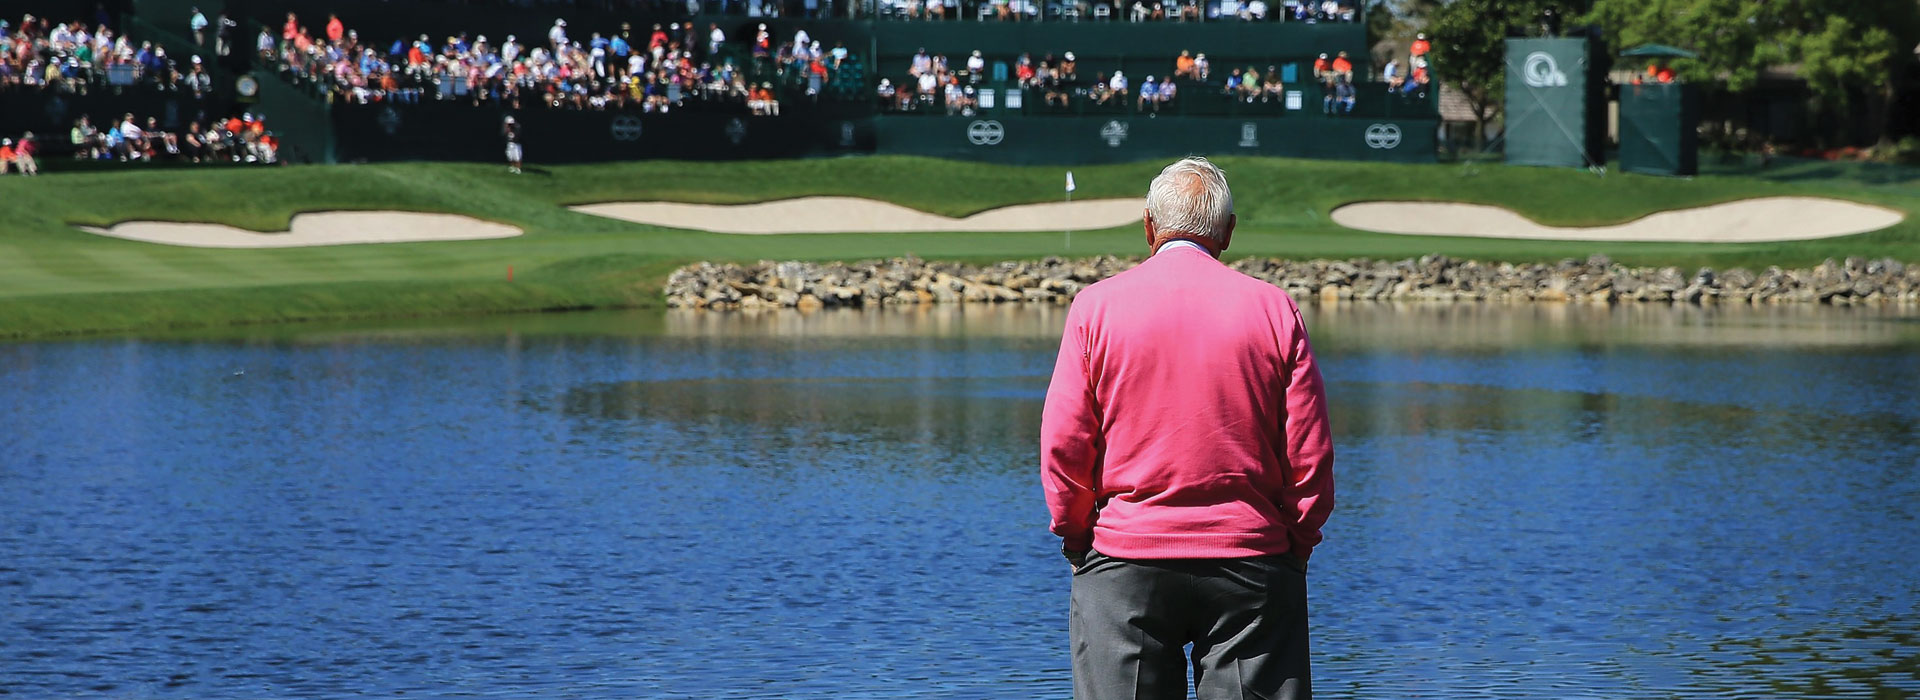 4 Decades of the Arnold Palmer Invitational